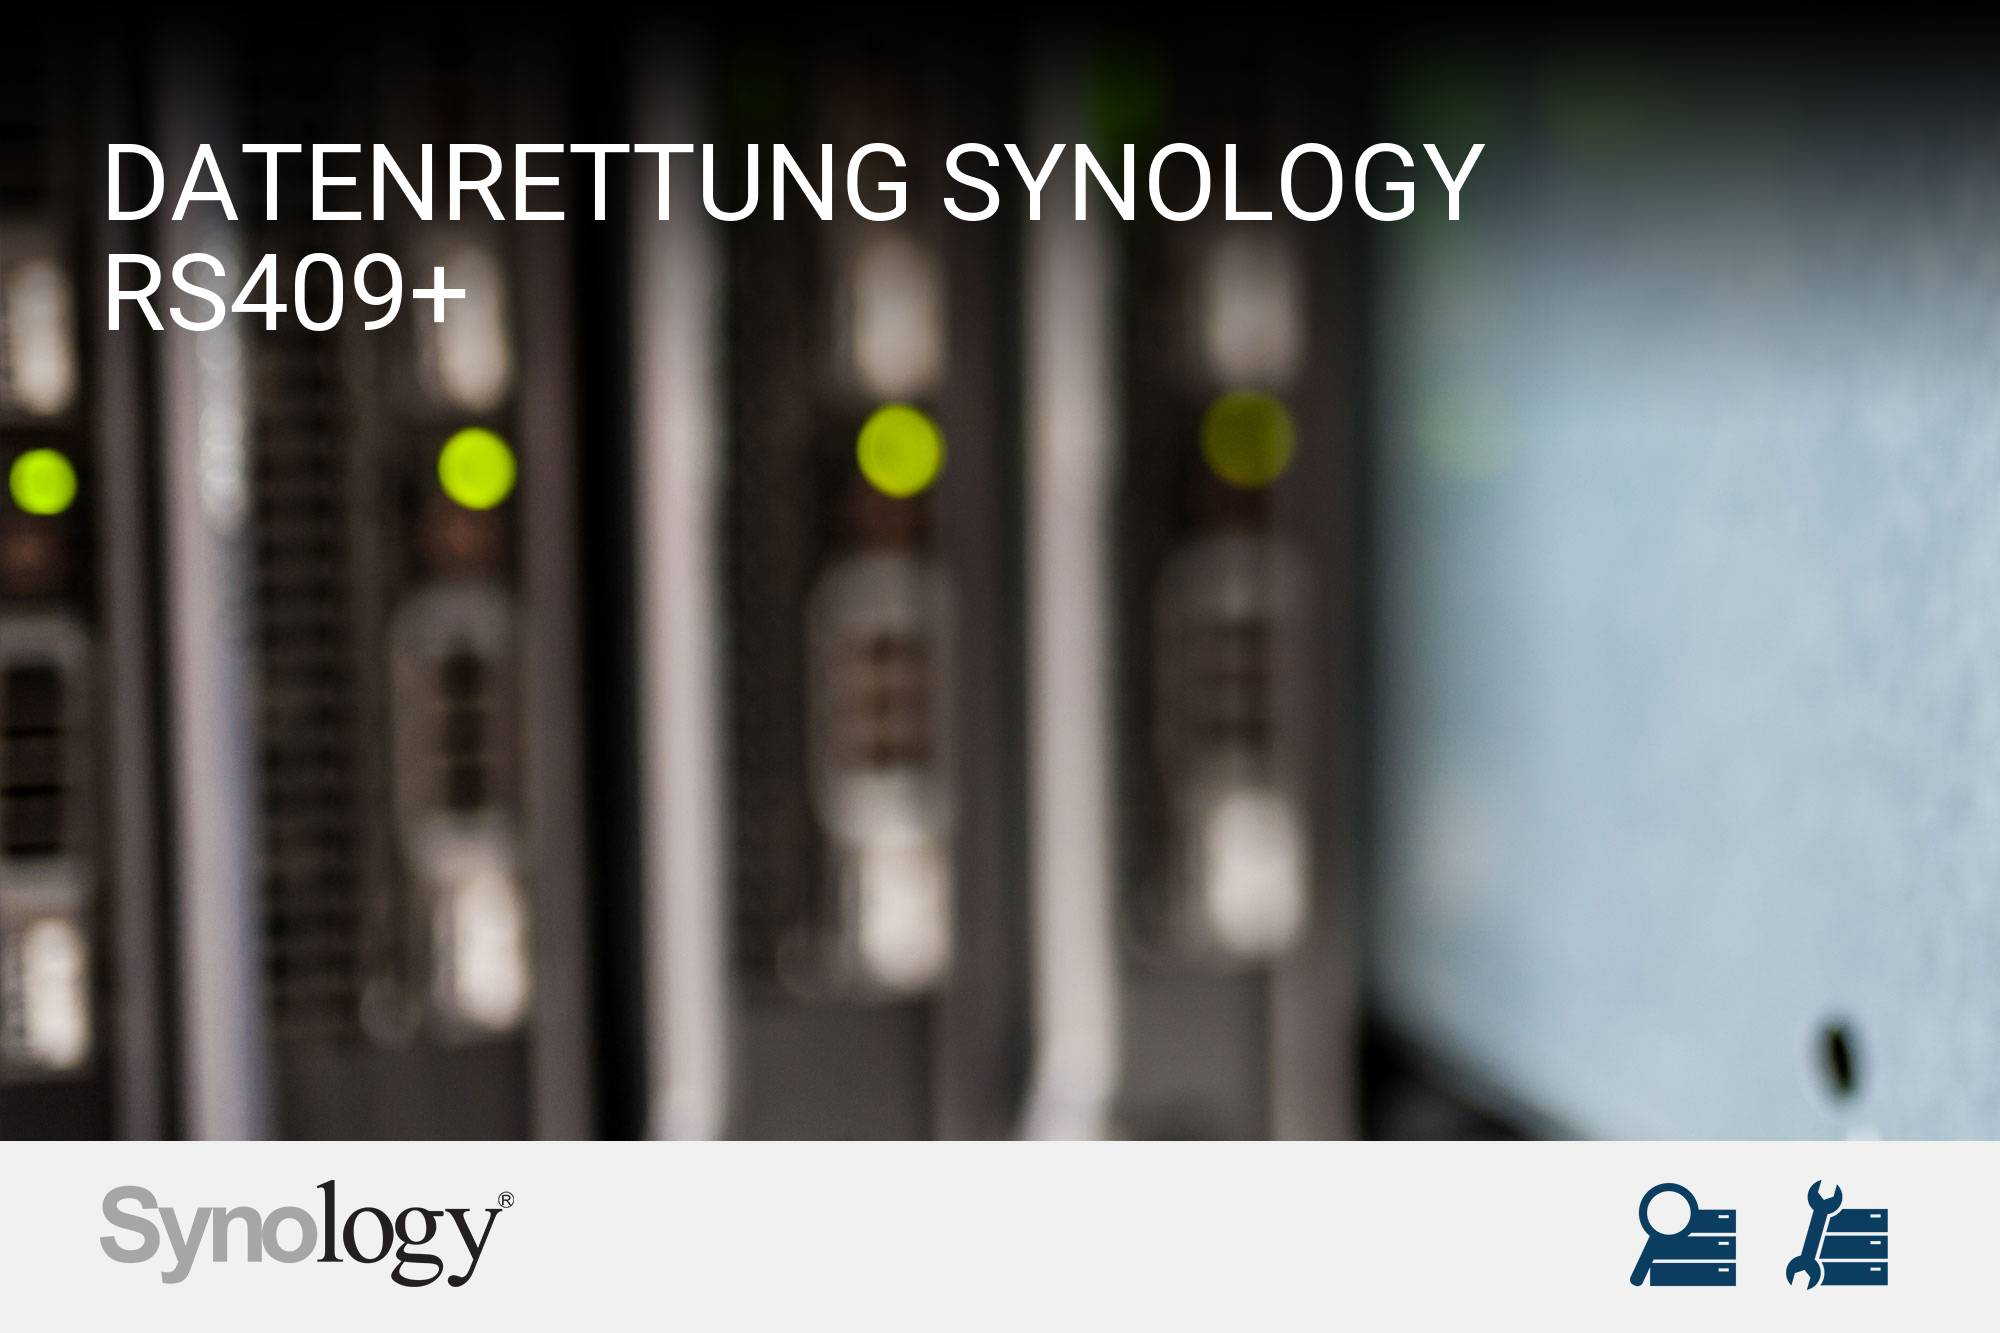 Synology RS409+